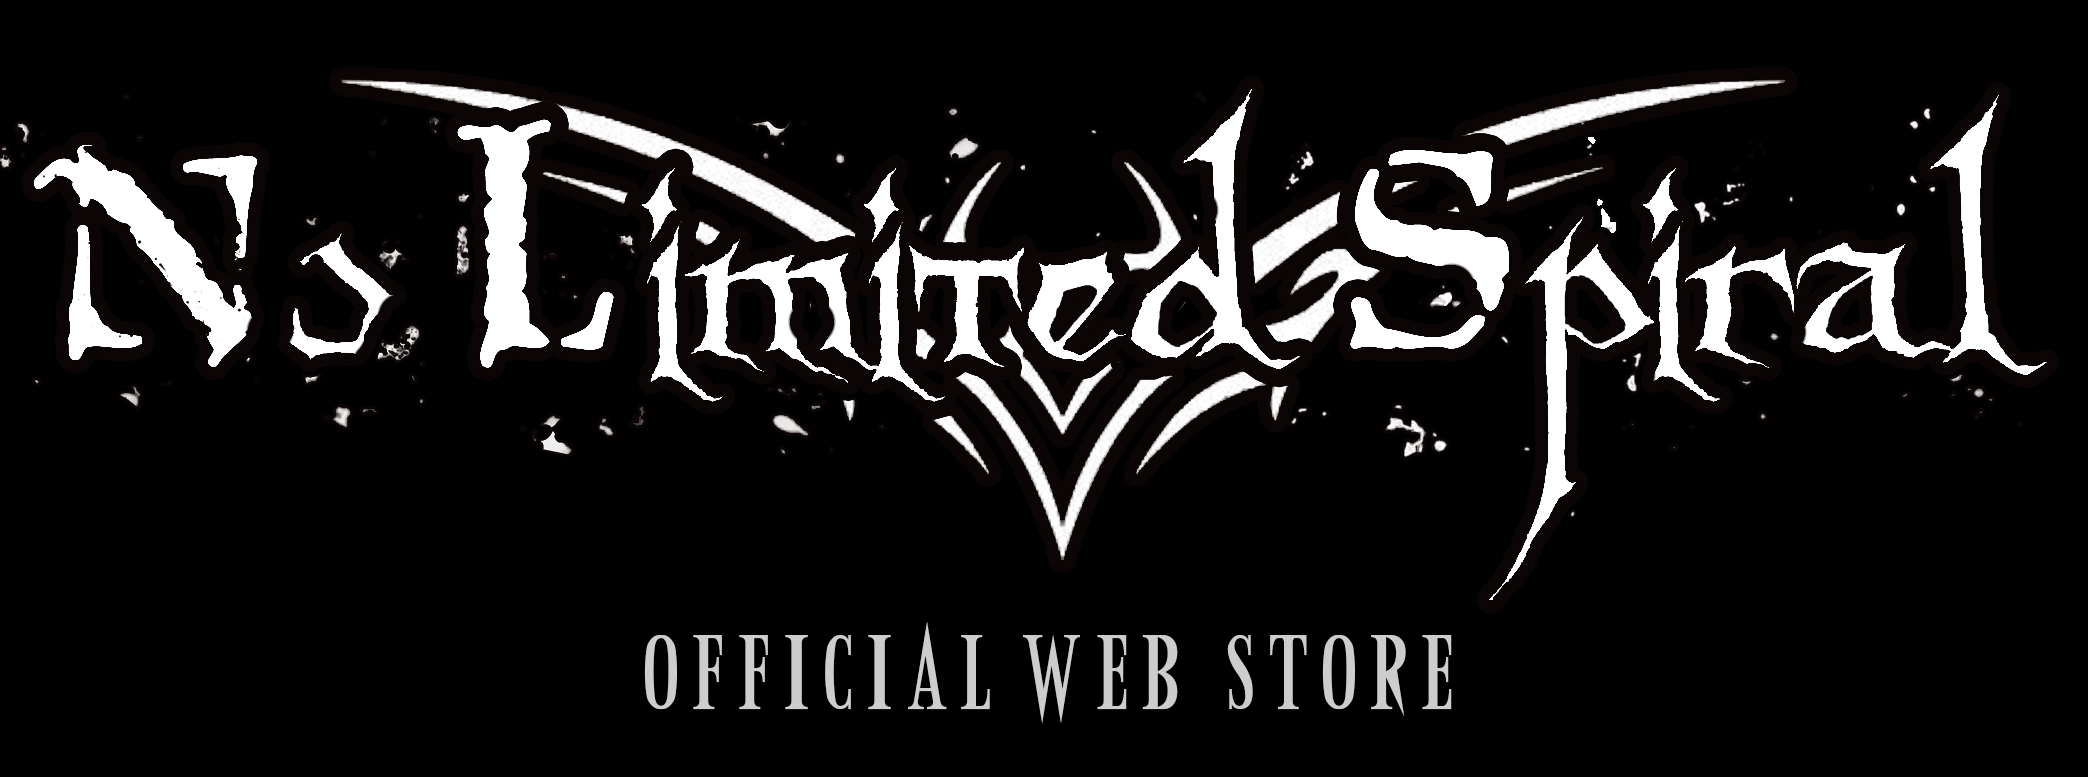 No Limited Spiral - Official Web Store